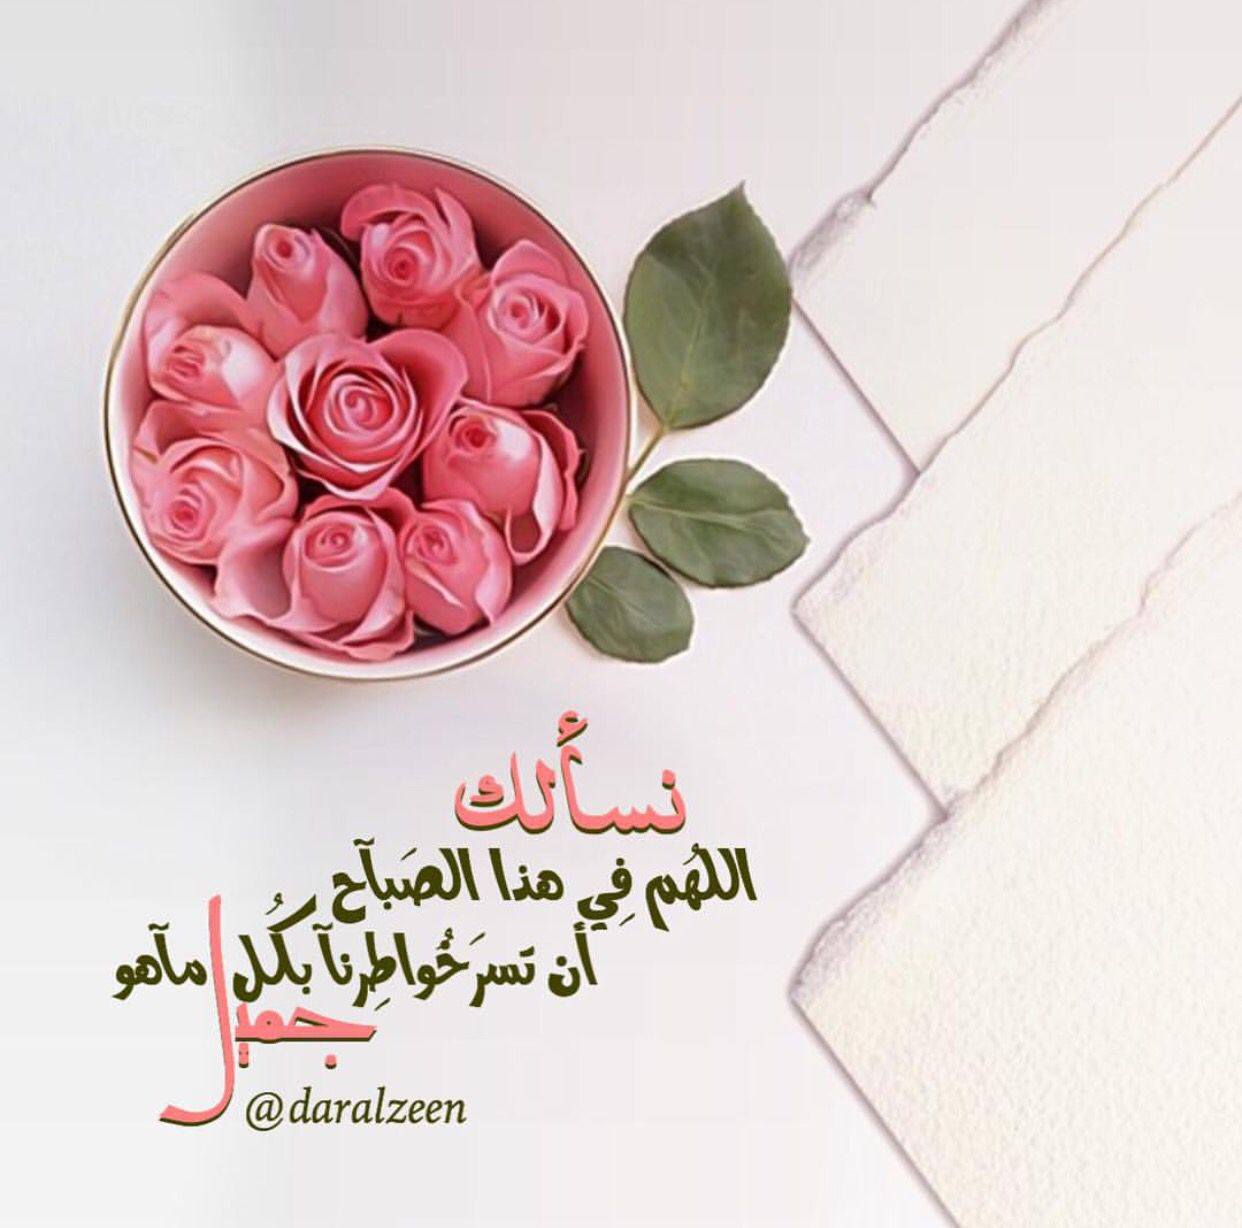 Pin By Daralzeen On صباح الخير Flower Backgrounds Baby Party Themes Islamic Pictures